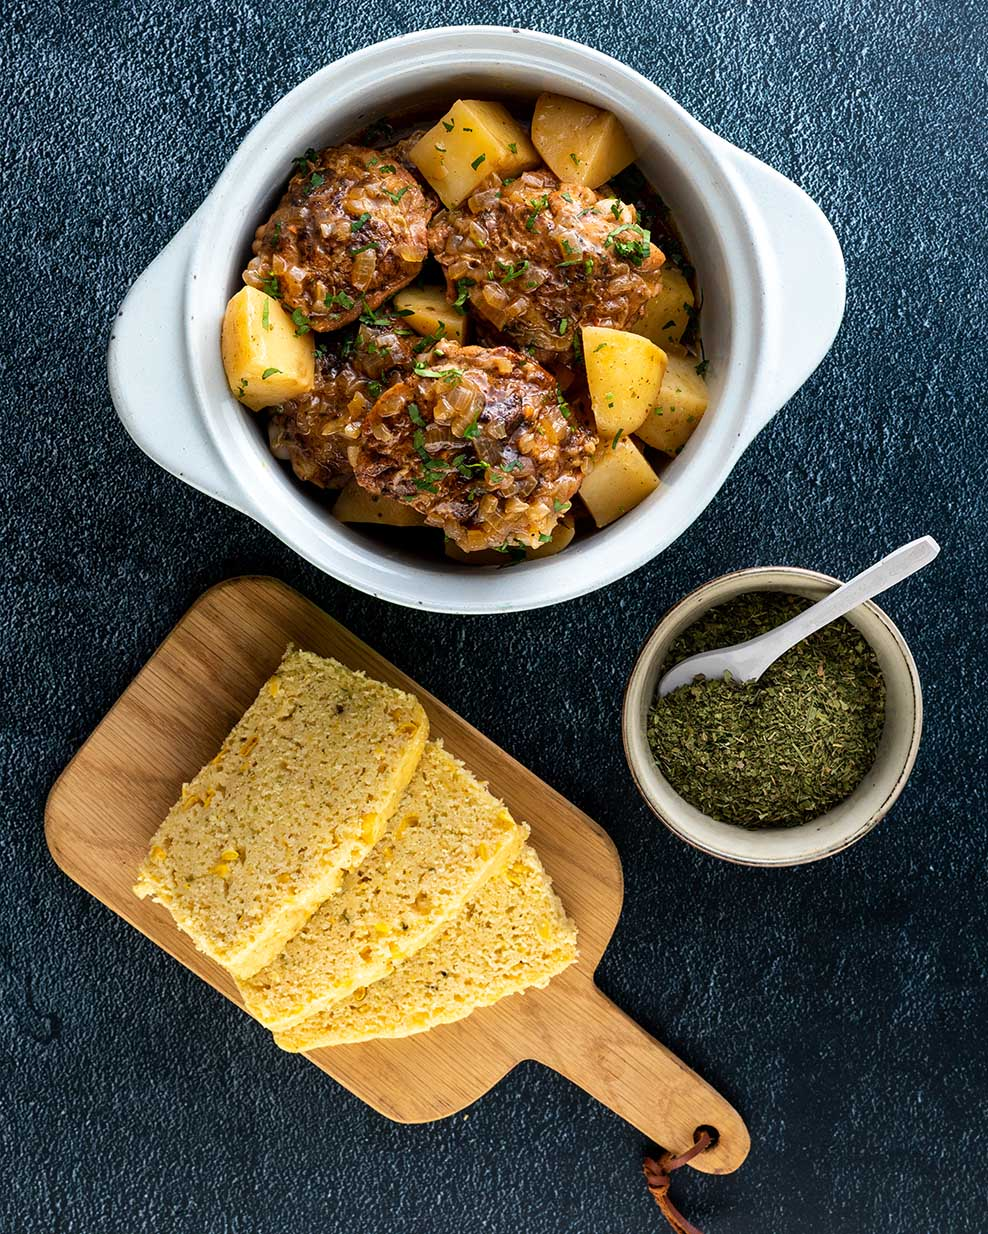 Parsley Mealie Bread with Portuguese Chicken and Bean Stew